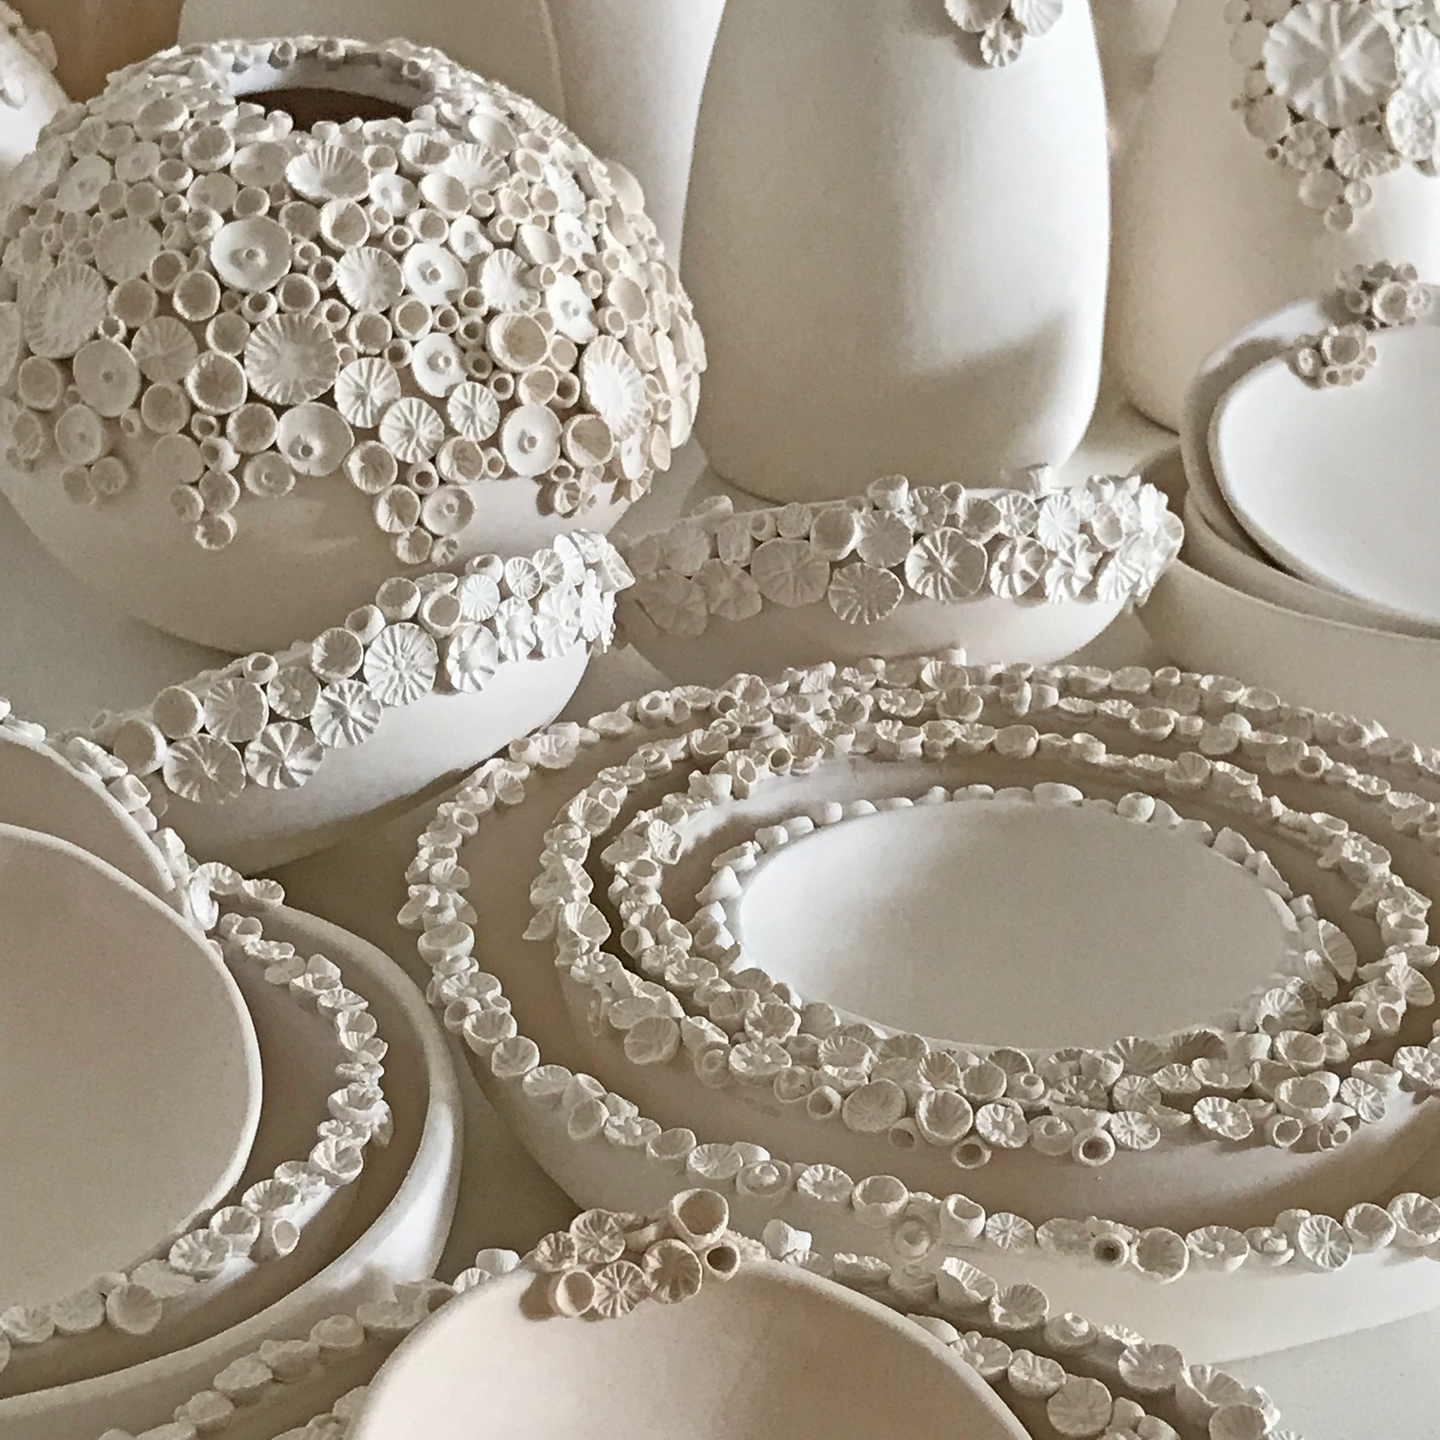 An array of bisque (unglazed, fired) ceramic vases and bowls adorned with coral-like 3d details by ClayPress Ceramics